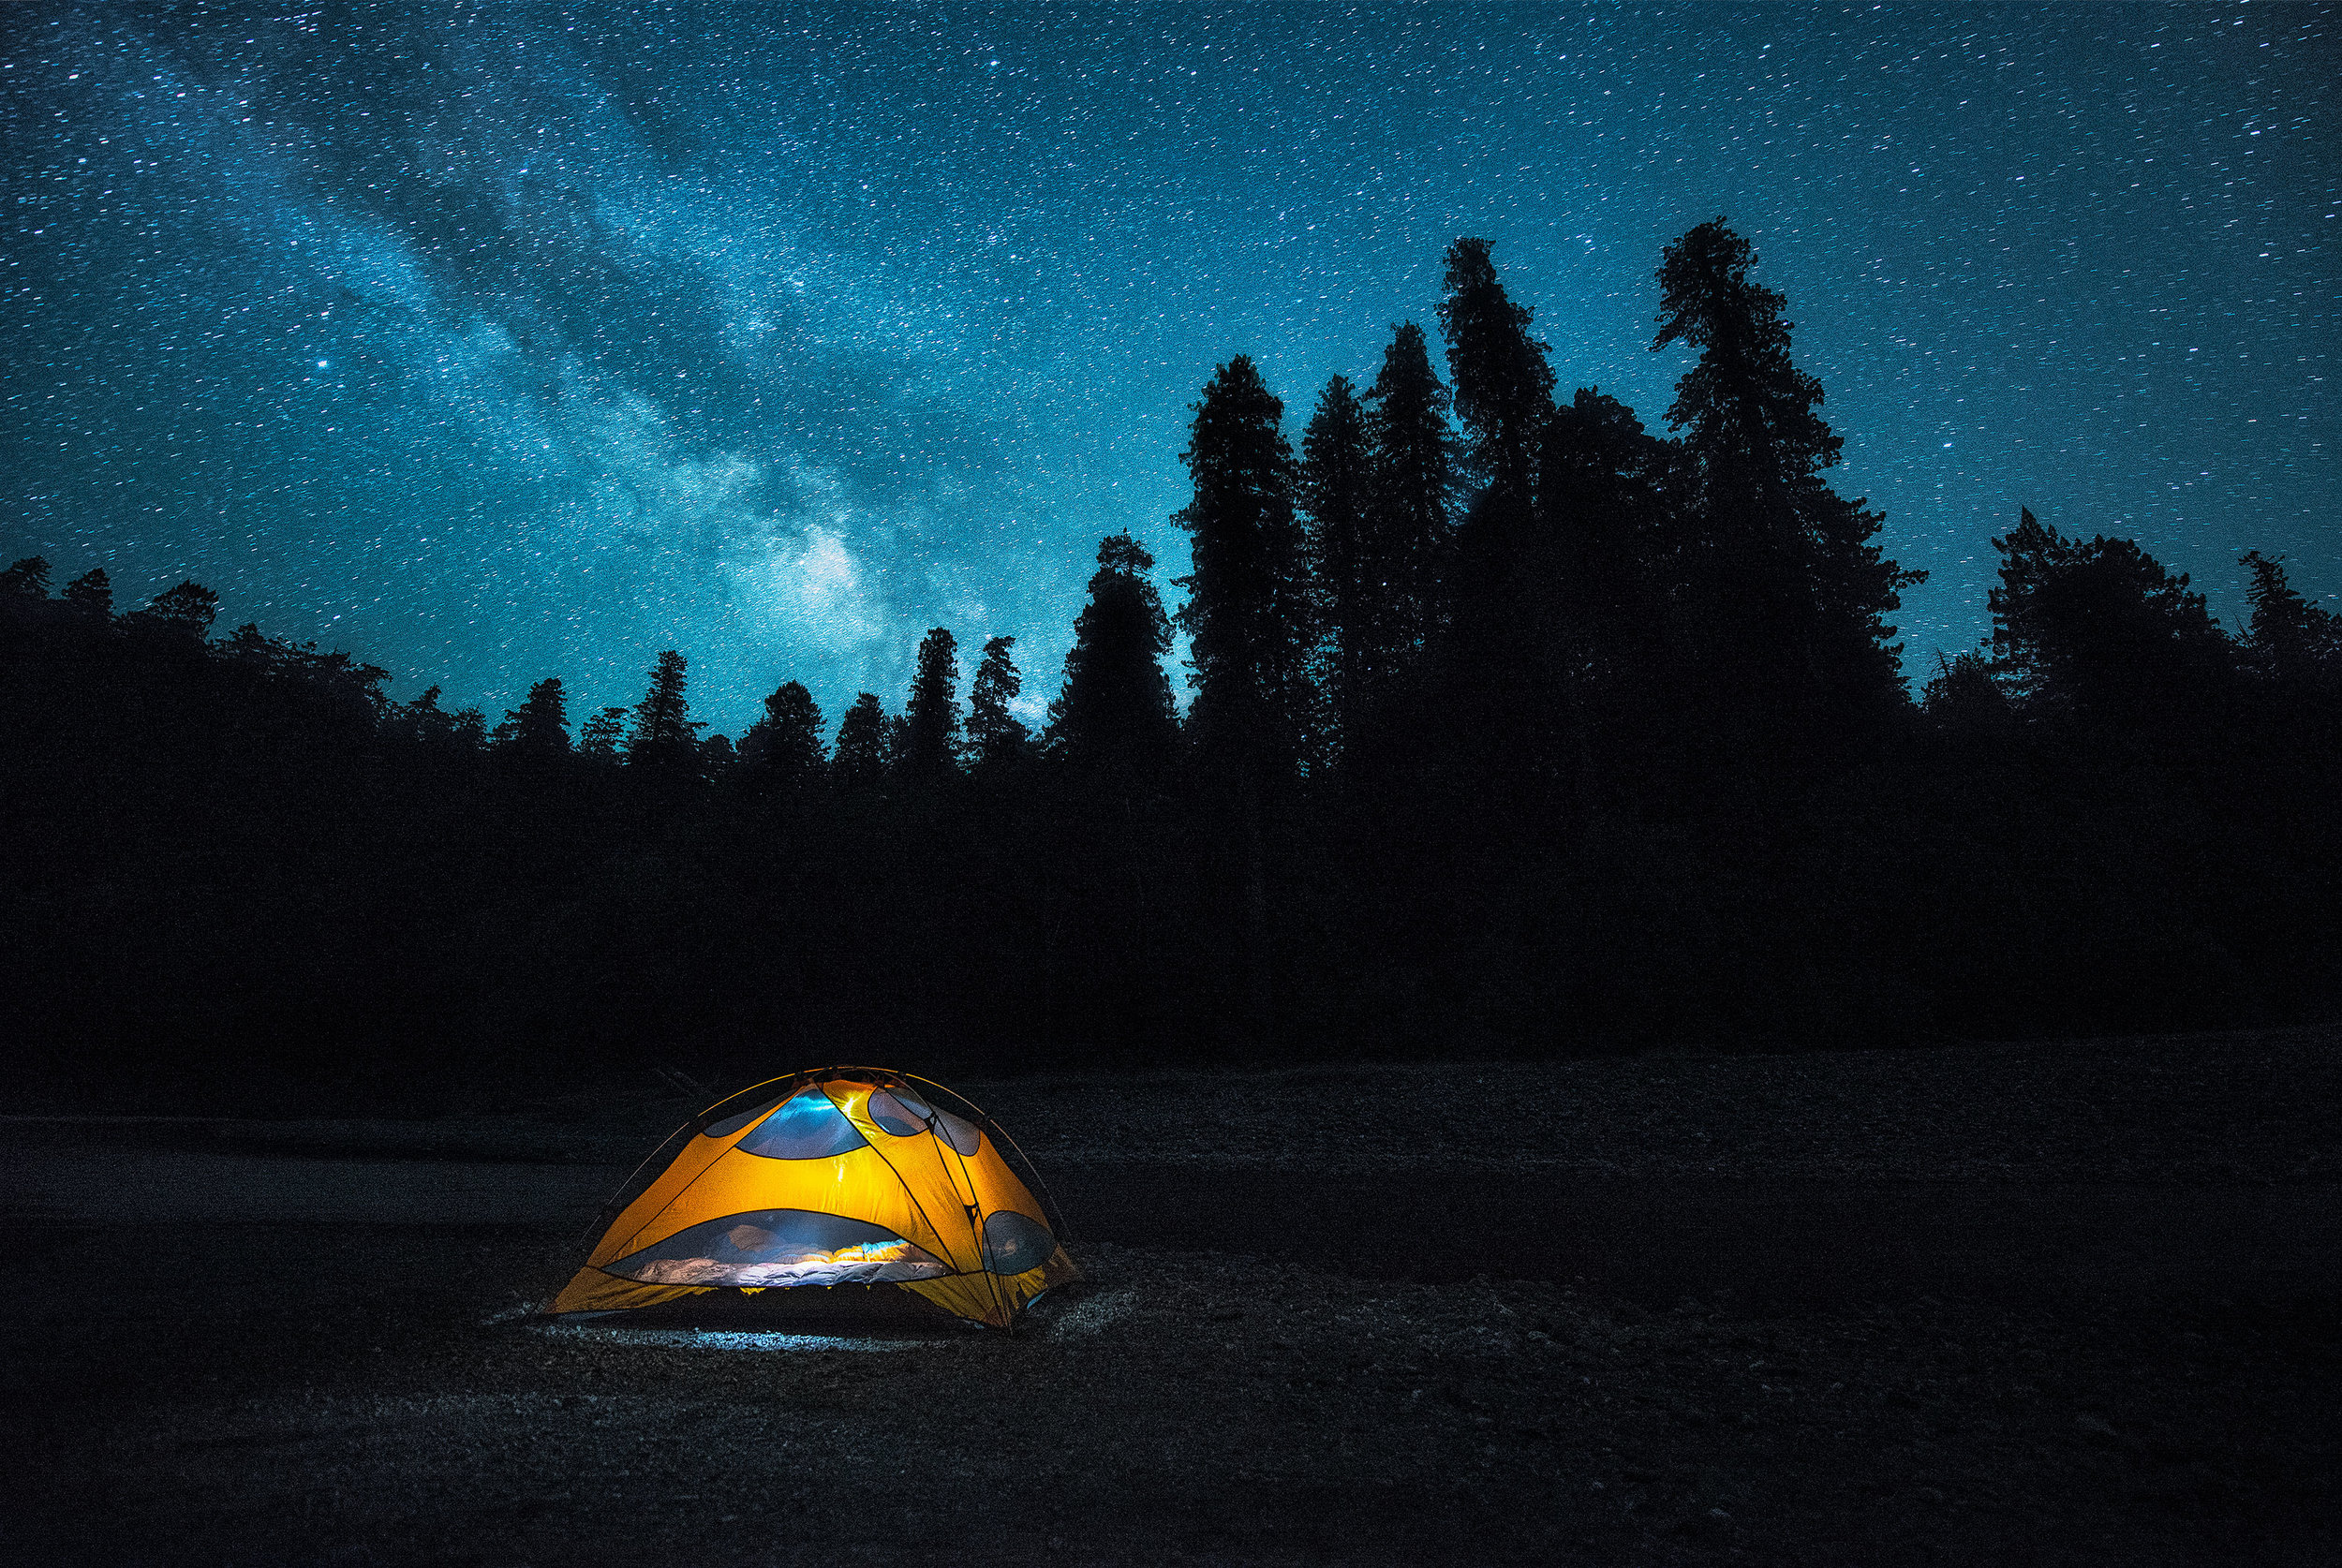 austin-trigg-redwood-water-bottle-Creek-tall-tree-grove-milky-way-tent-camping-california-adventure.jpg